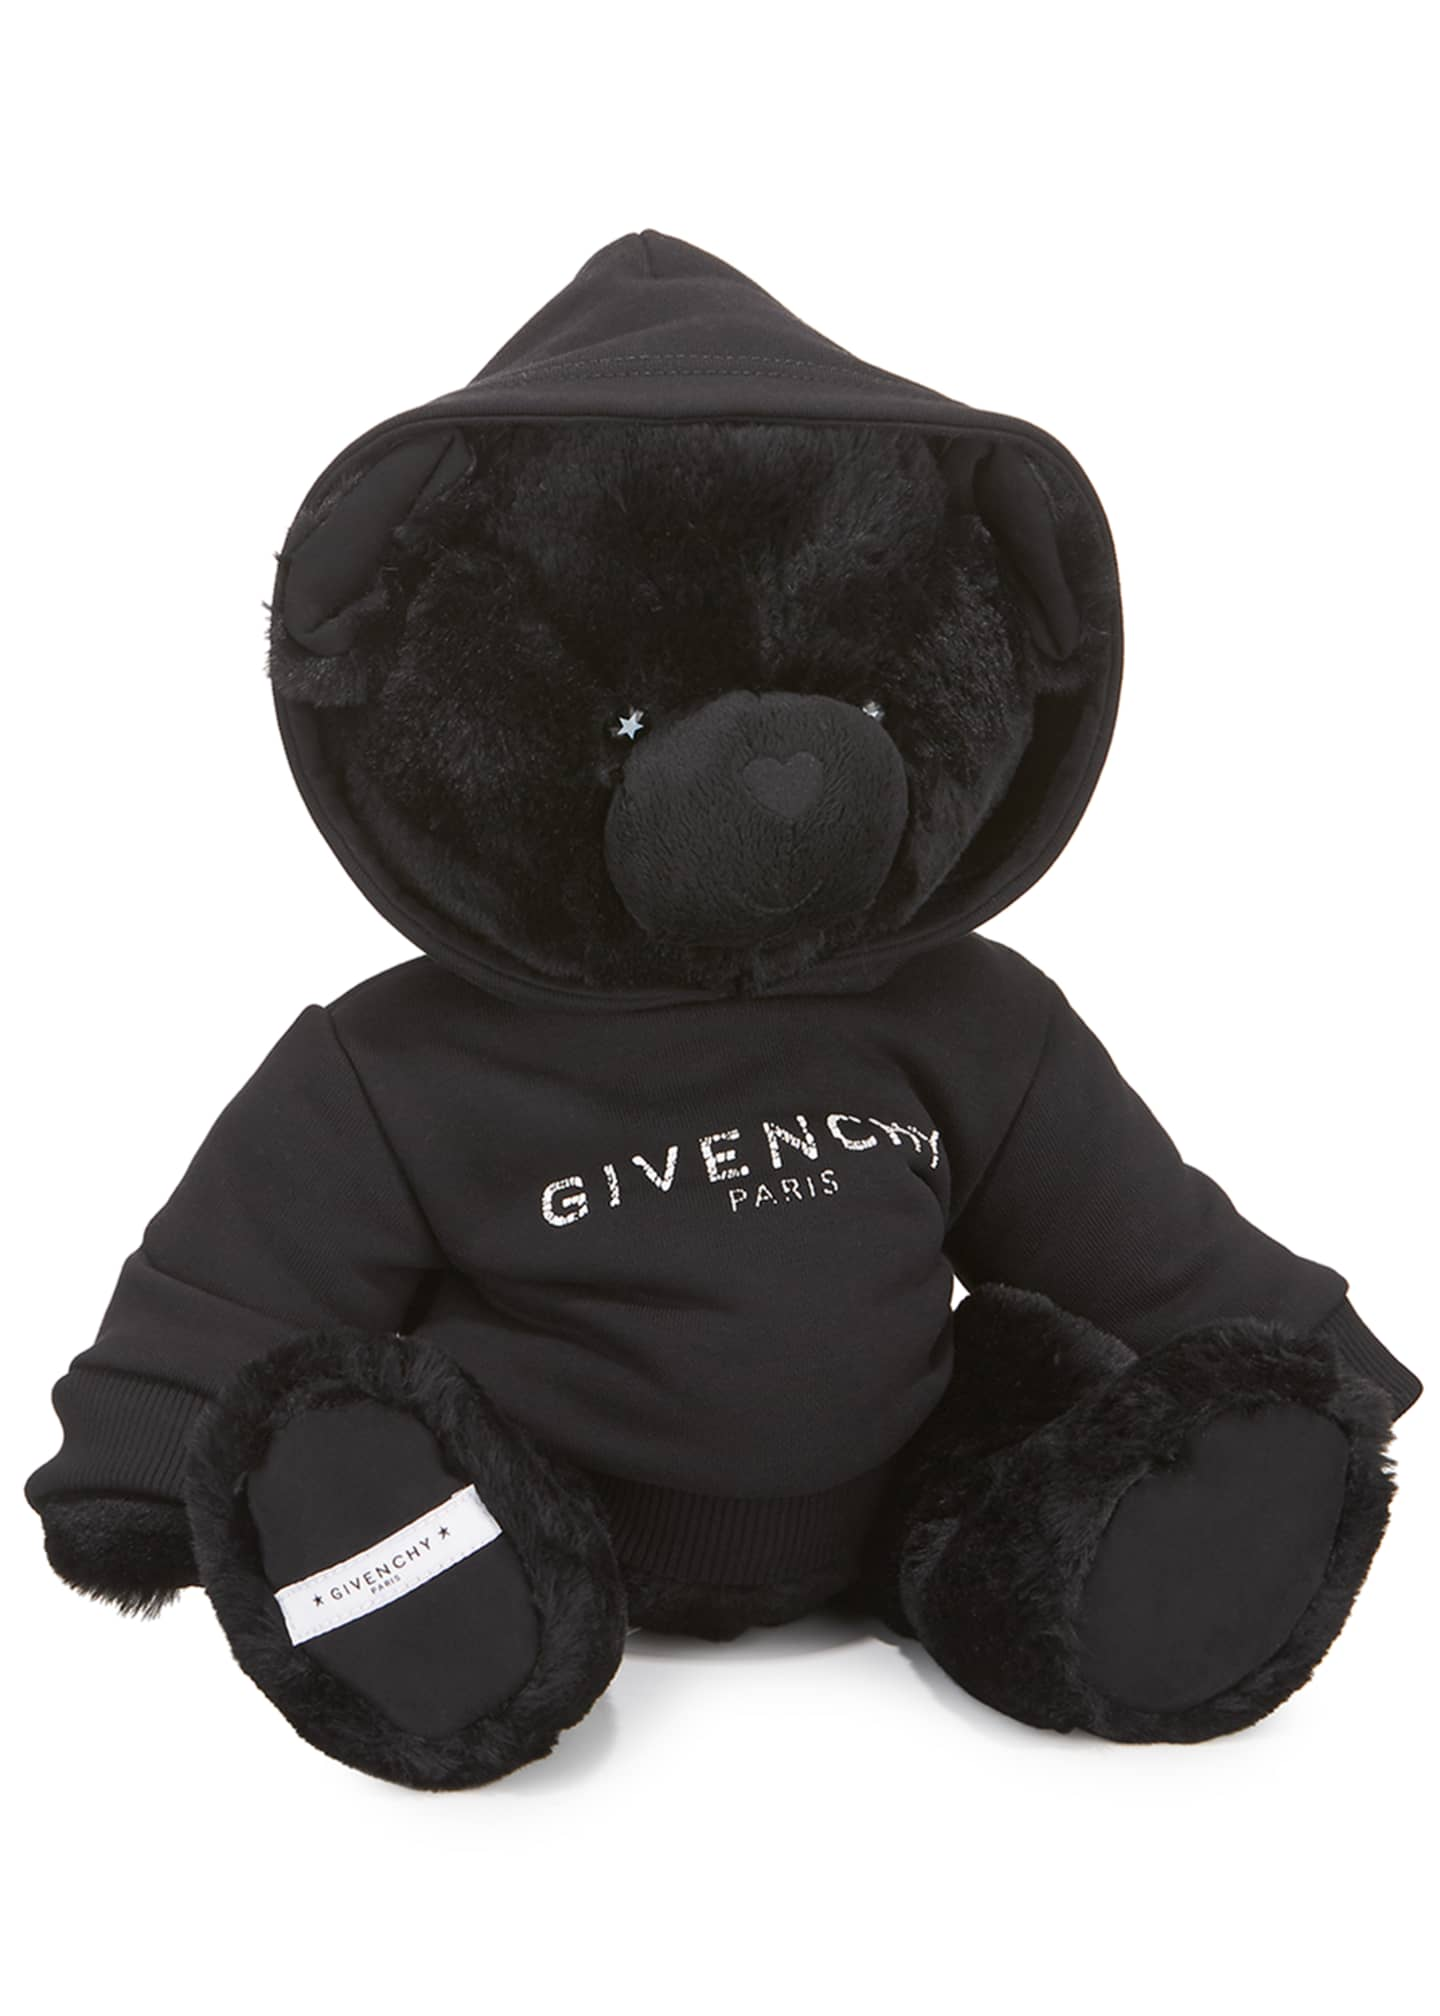 Givenchy Teddy Bear in Logo Sweatshirt